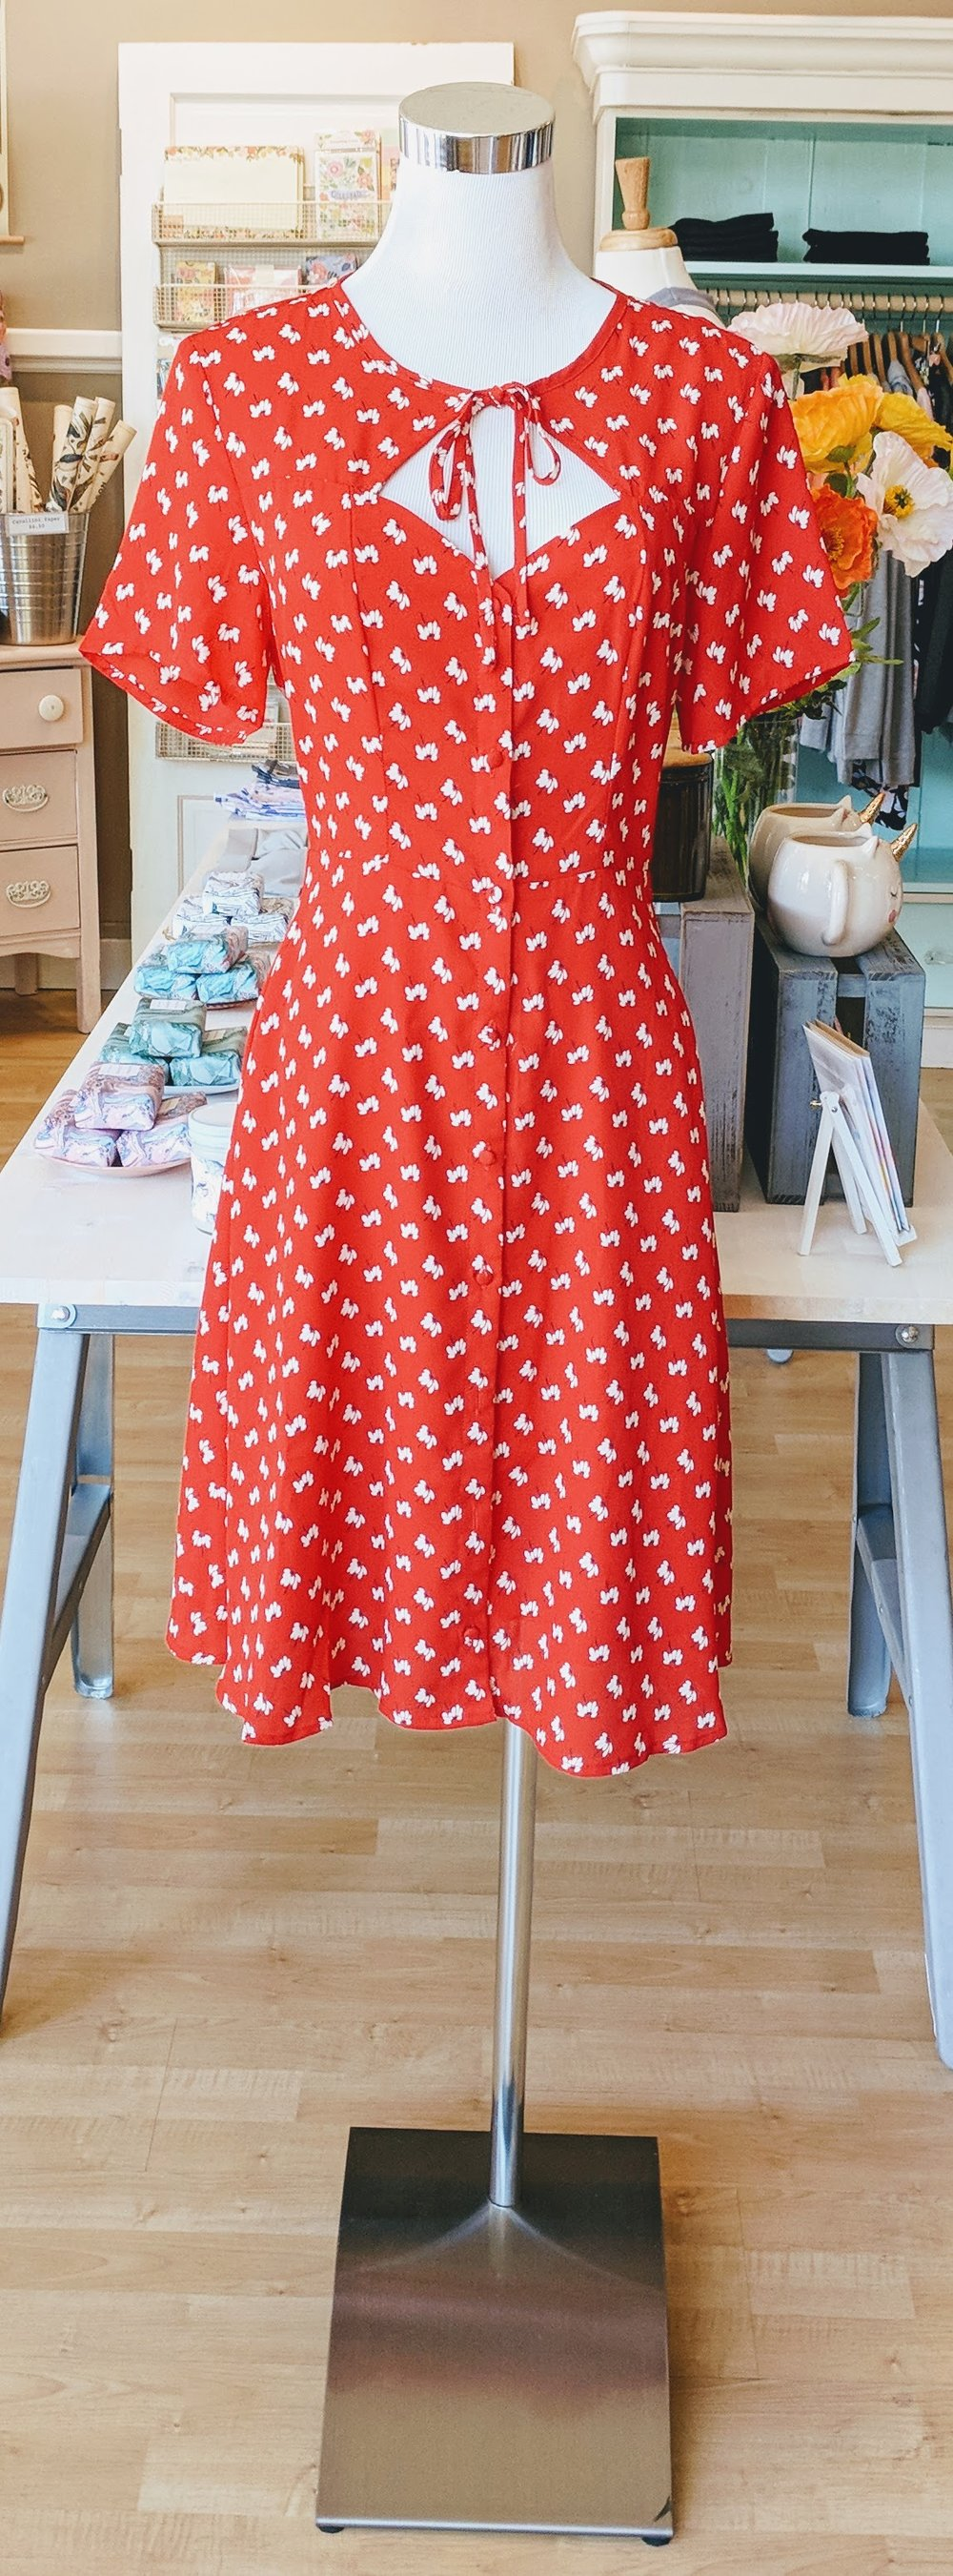 Red pattern dress with buttons and key hole detail with tie.